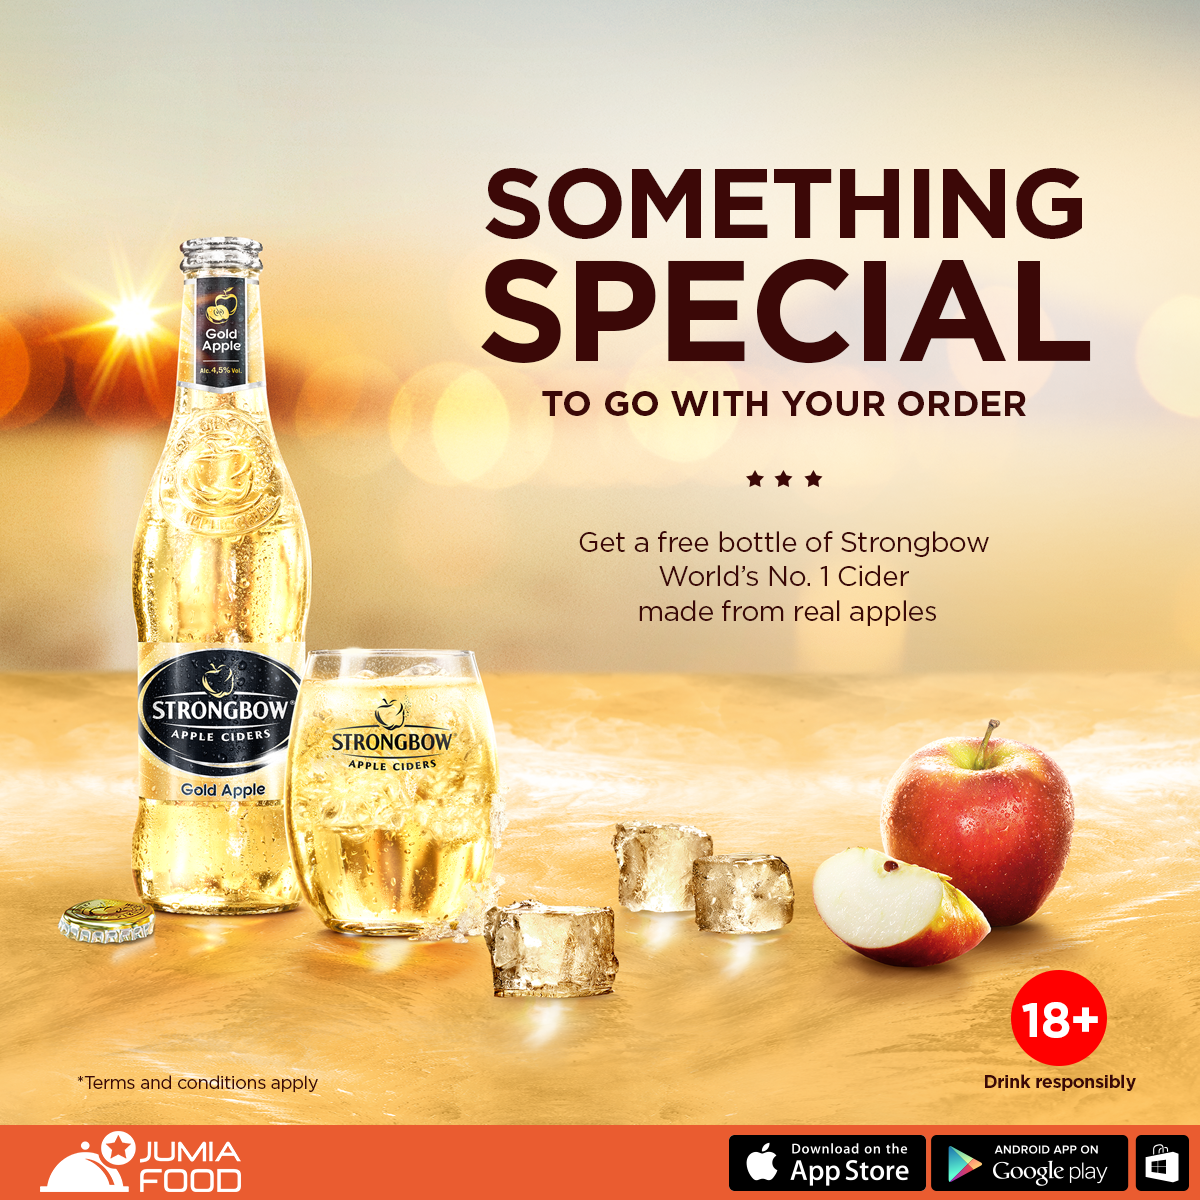 Strongbow Apple Ciders Rewards Consumers… Partners With Jumia Food